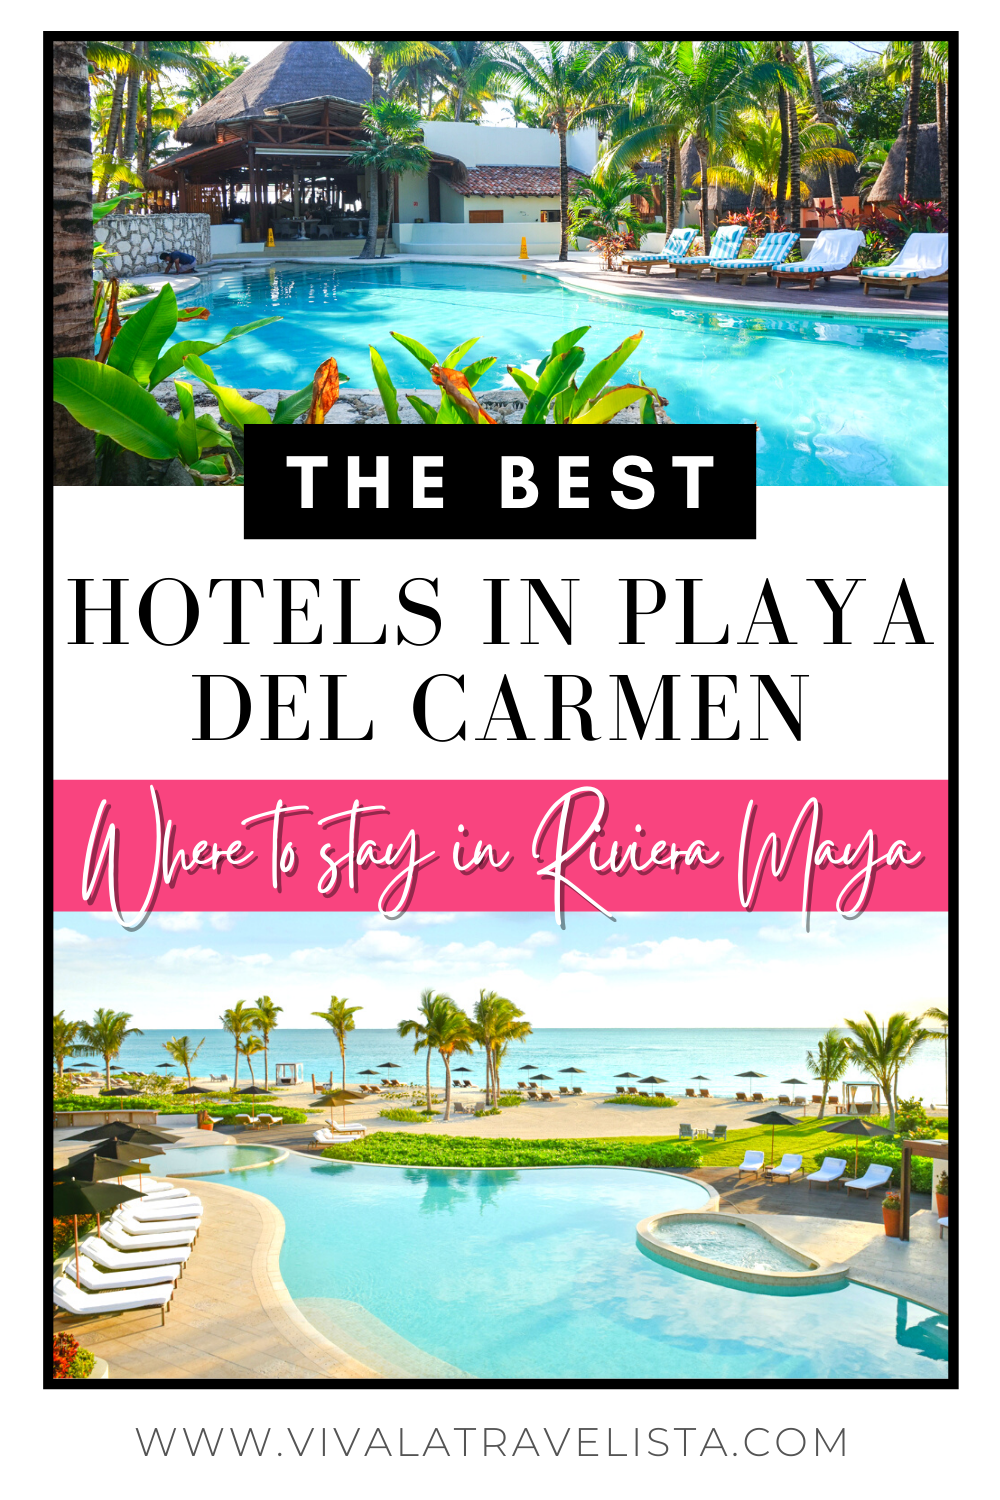 The Best Hotels in Playa del Carmen Where to Stay in Riviera Maya